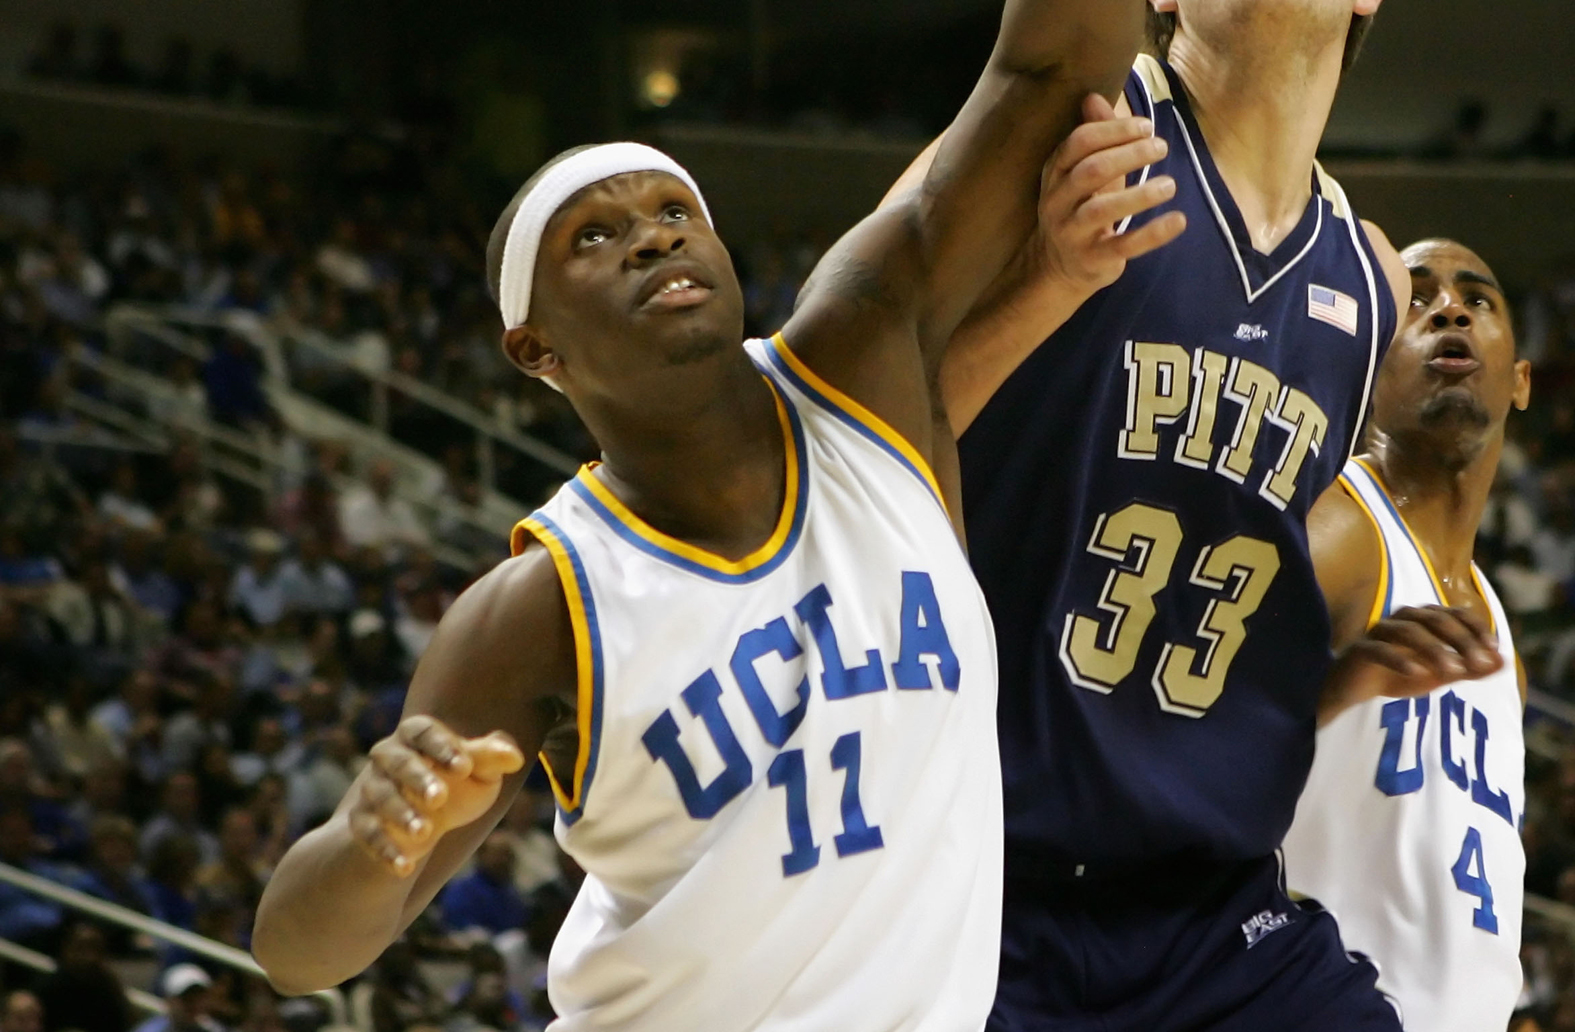 Ryan Wright during his time at NCAA powerhouse UCLA. Picture: Getty Images